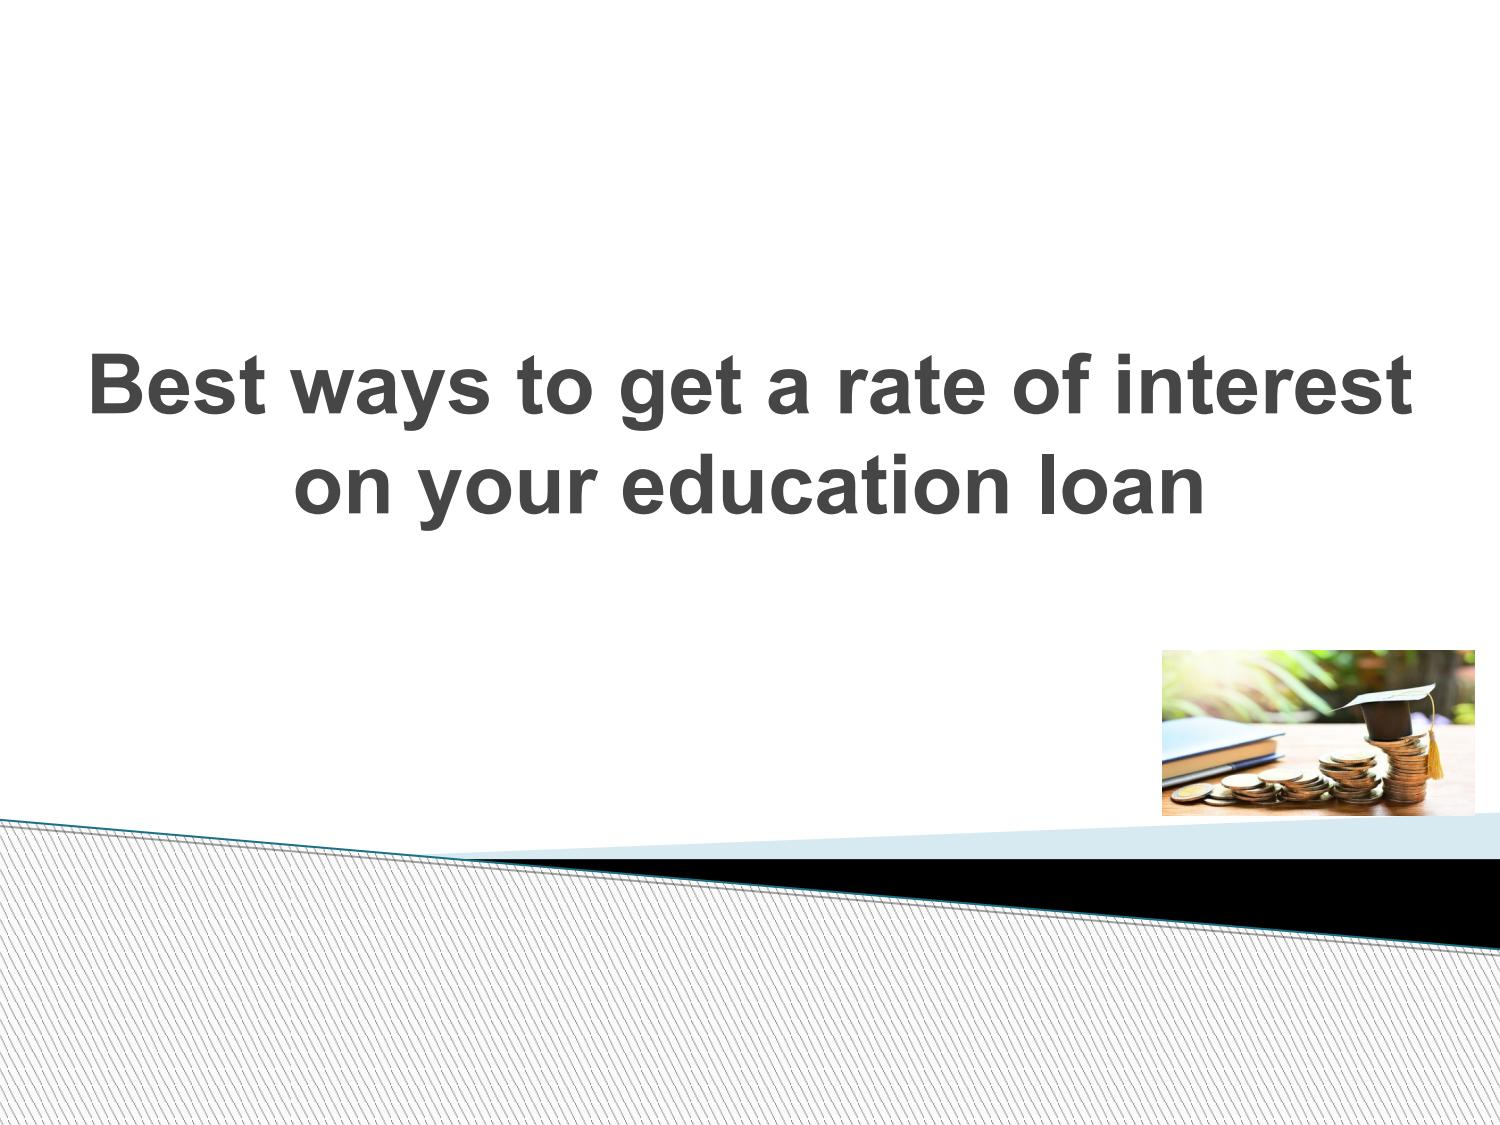 Best ways to get a rate of interest on your education loan